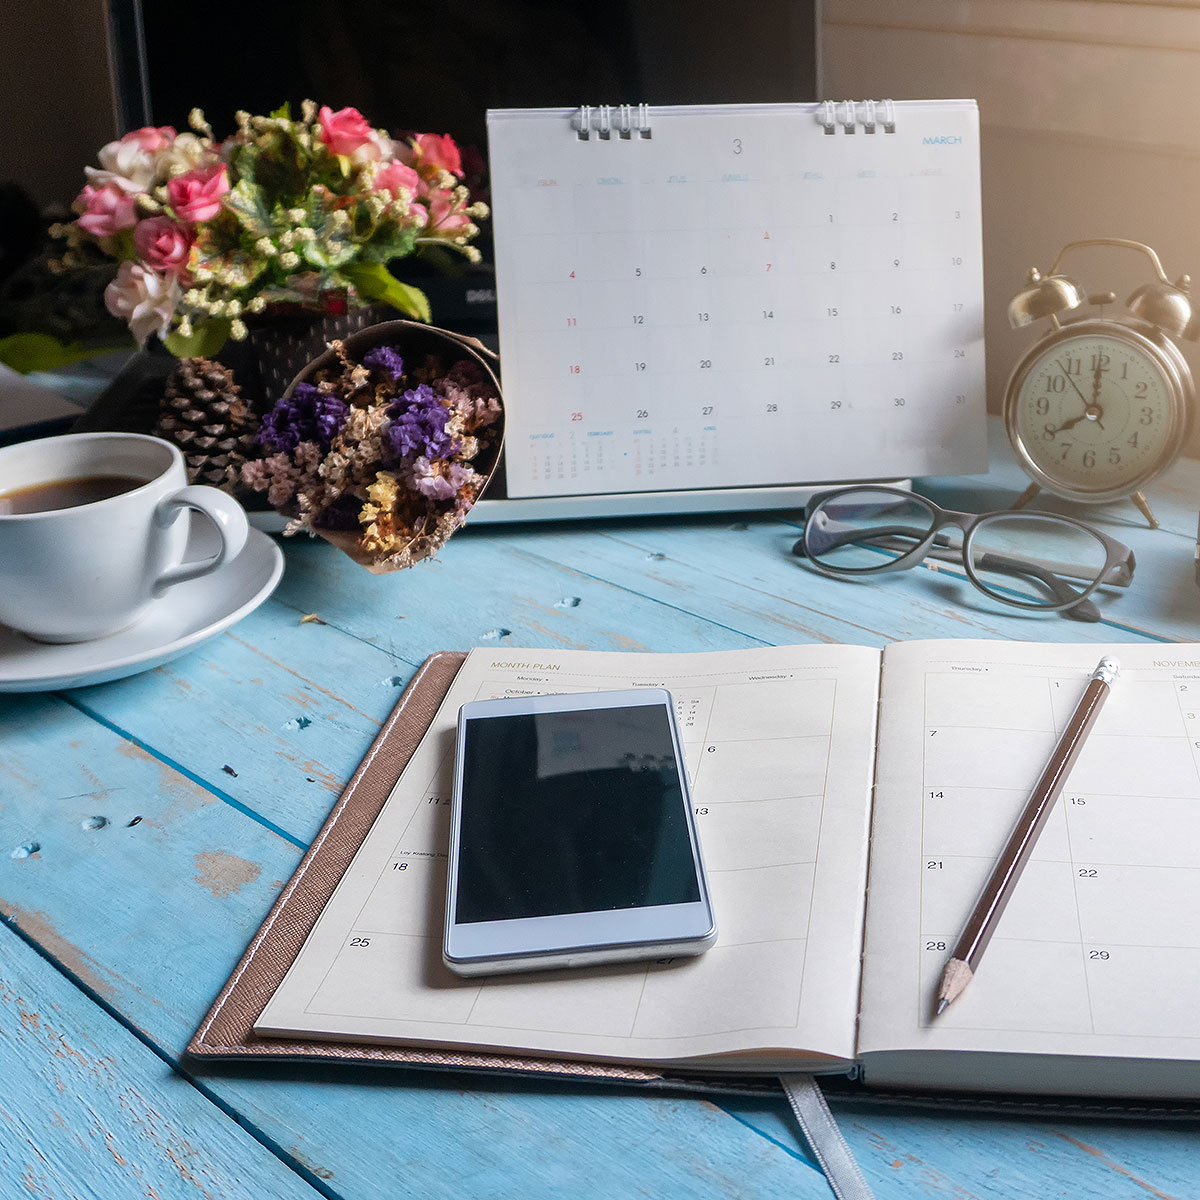 Phone, calendar and a planner on a desk of someone planning to hangout with their friends